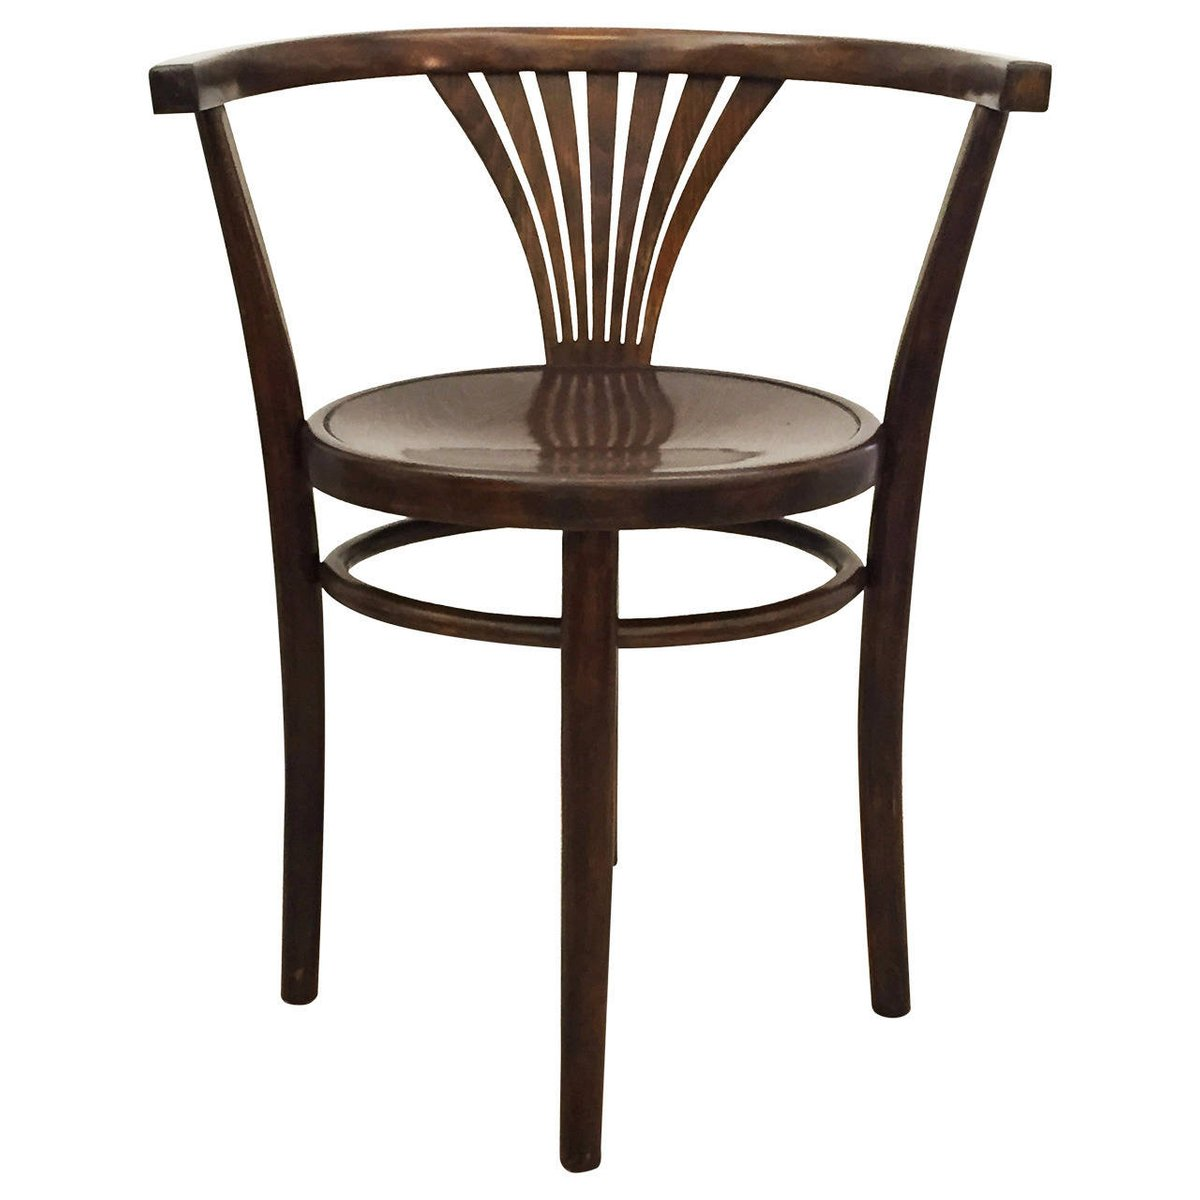 Antique Armchair By Michael Thonet 1900 For Sale At Pamono